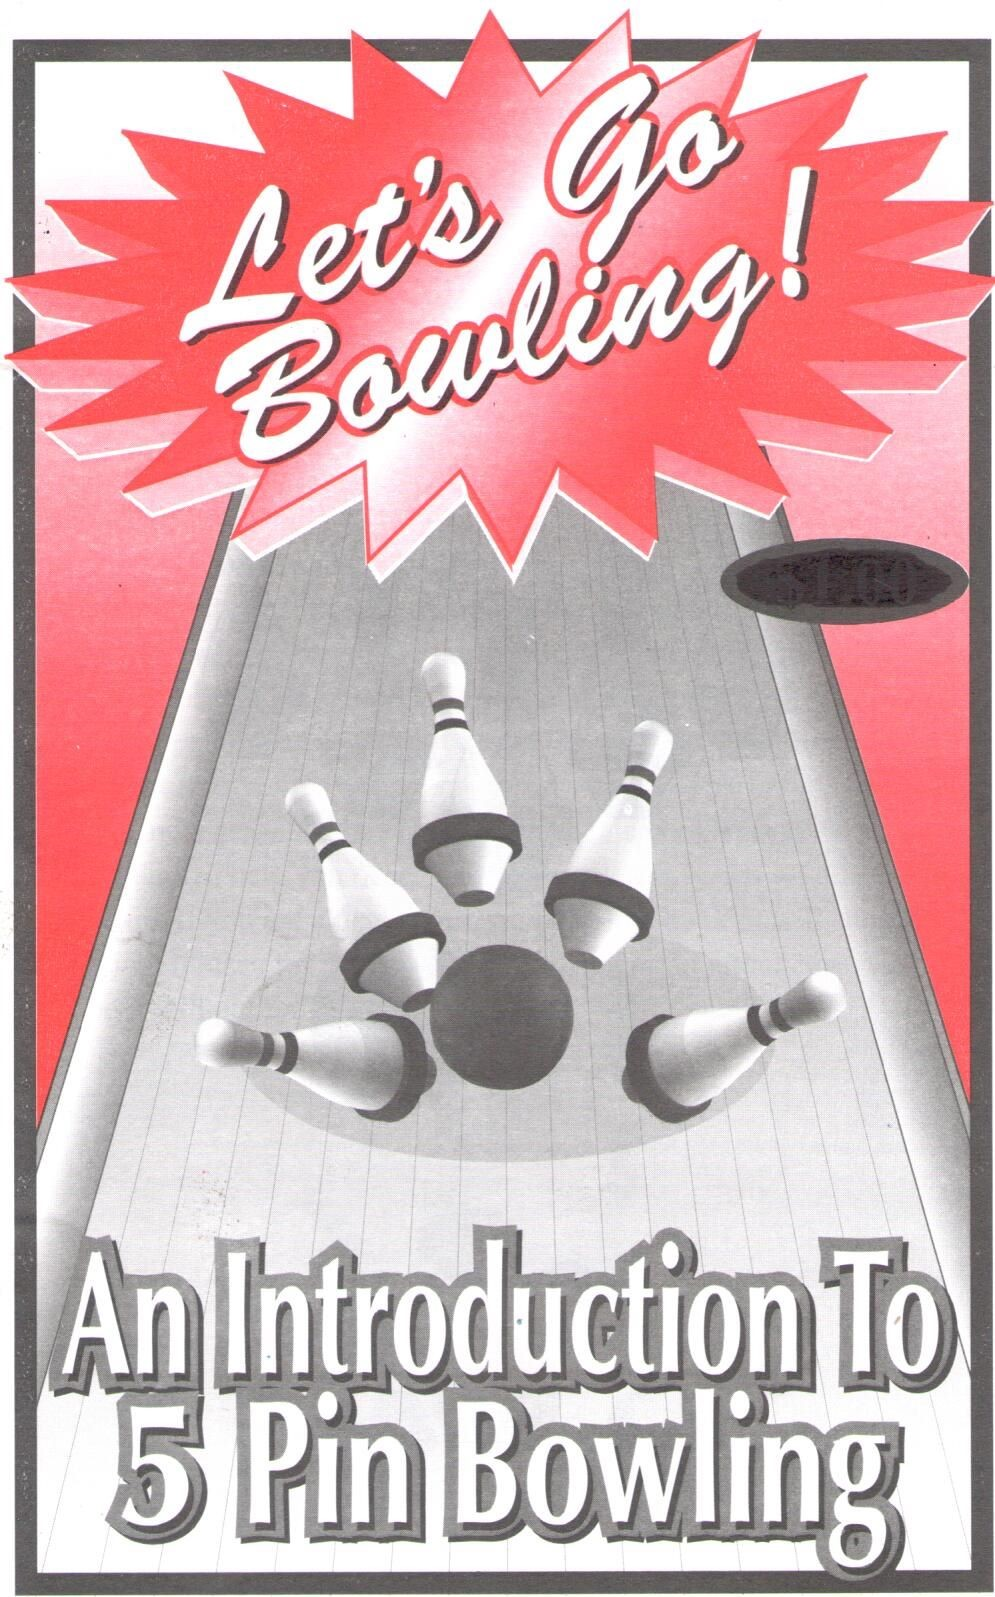 Lets Go Bowling